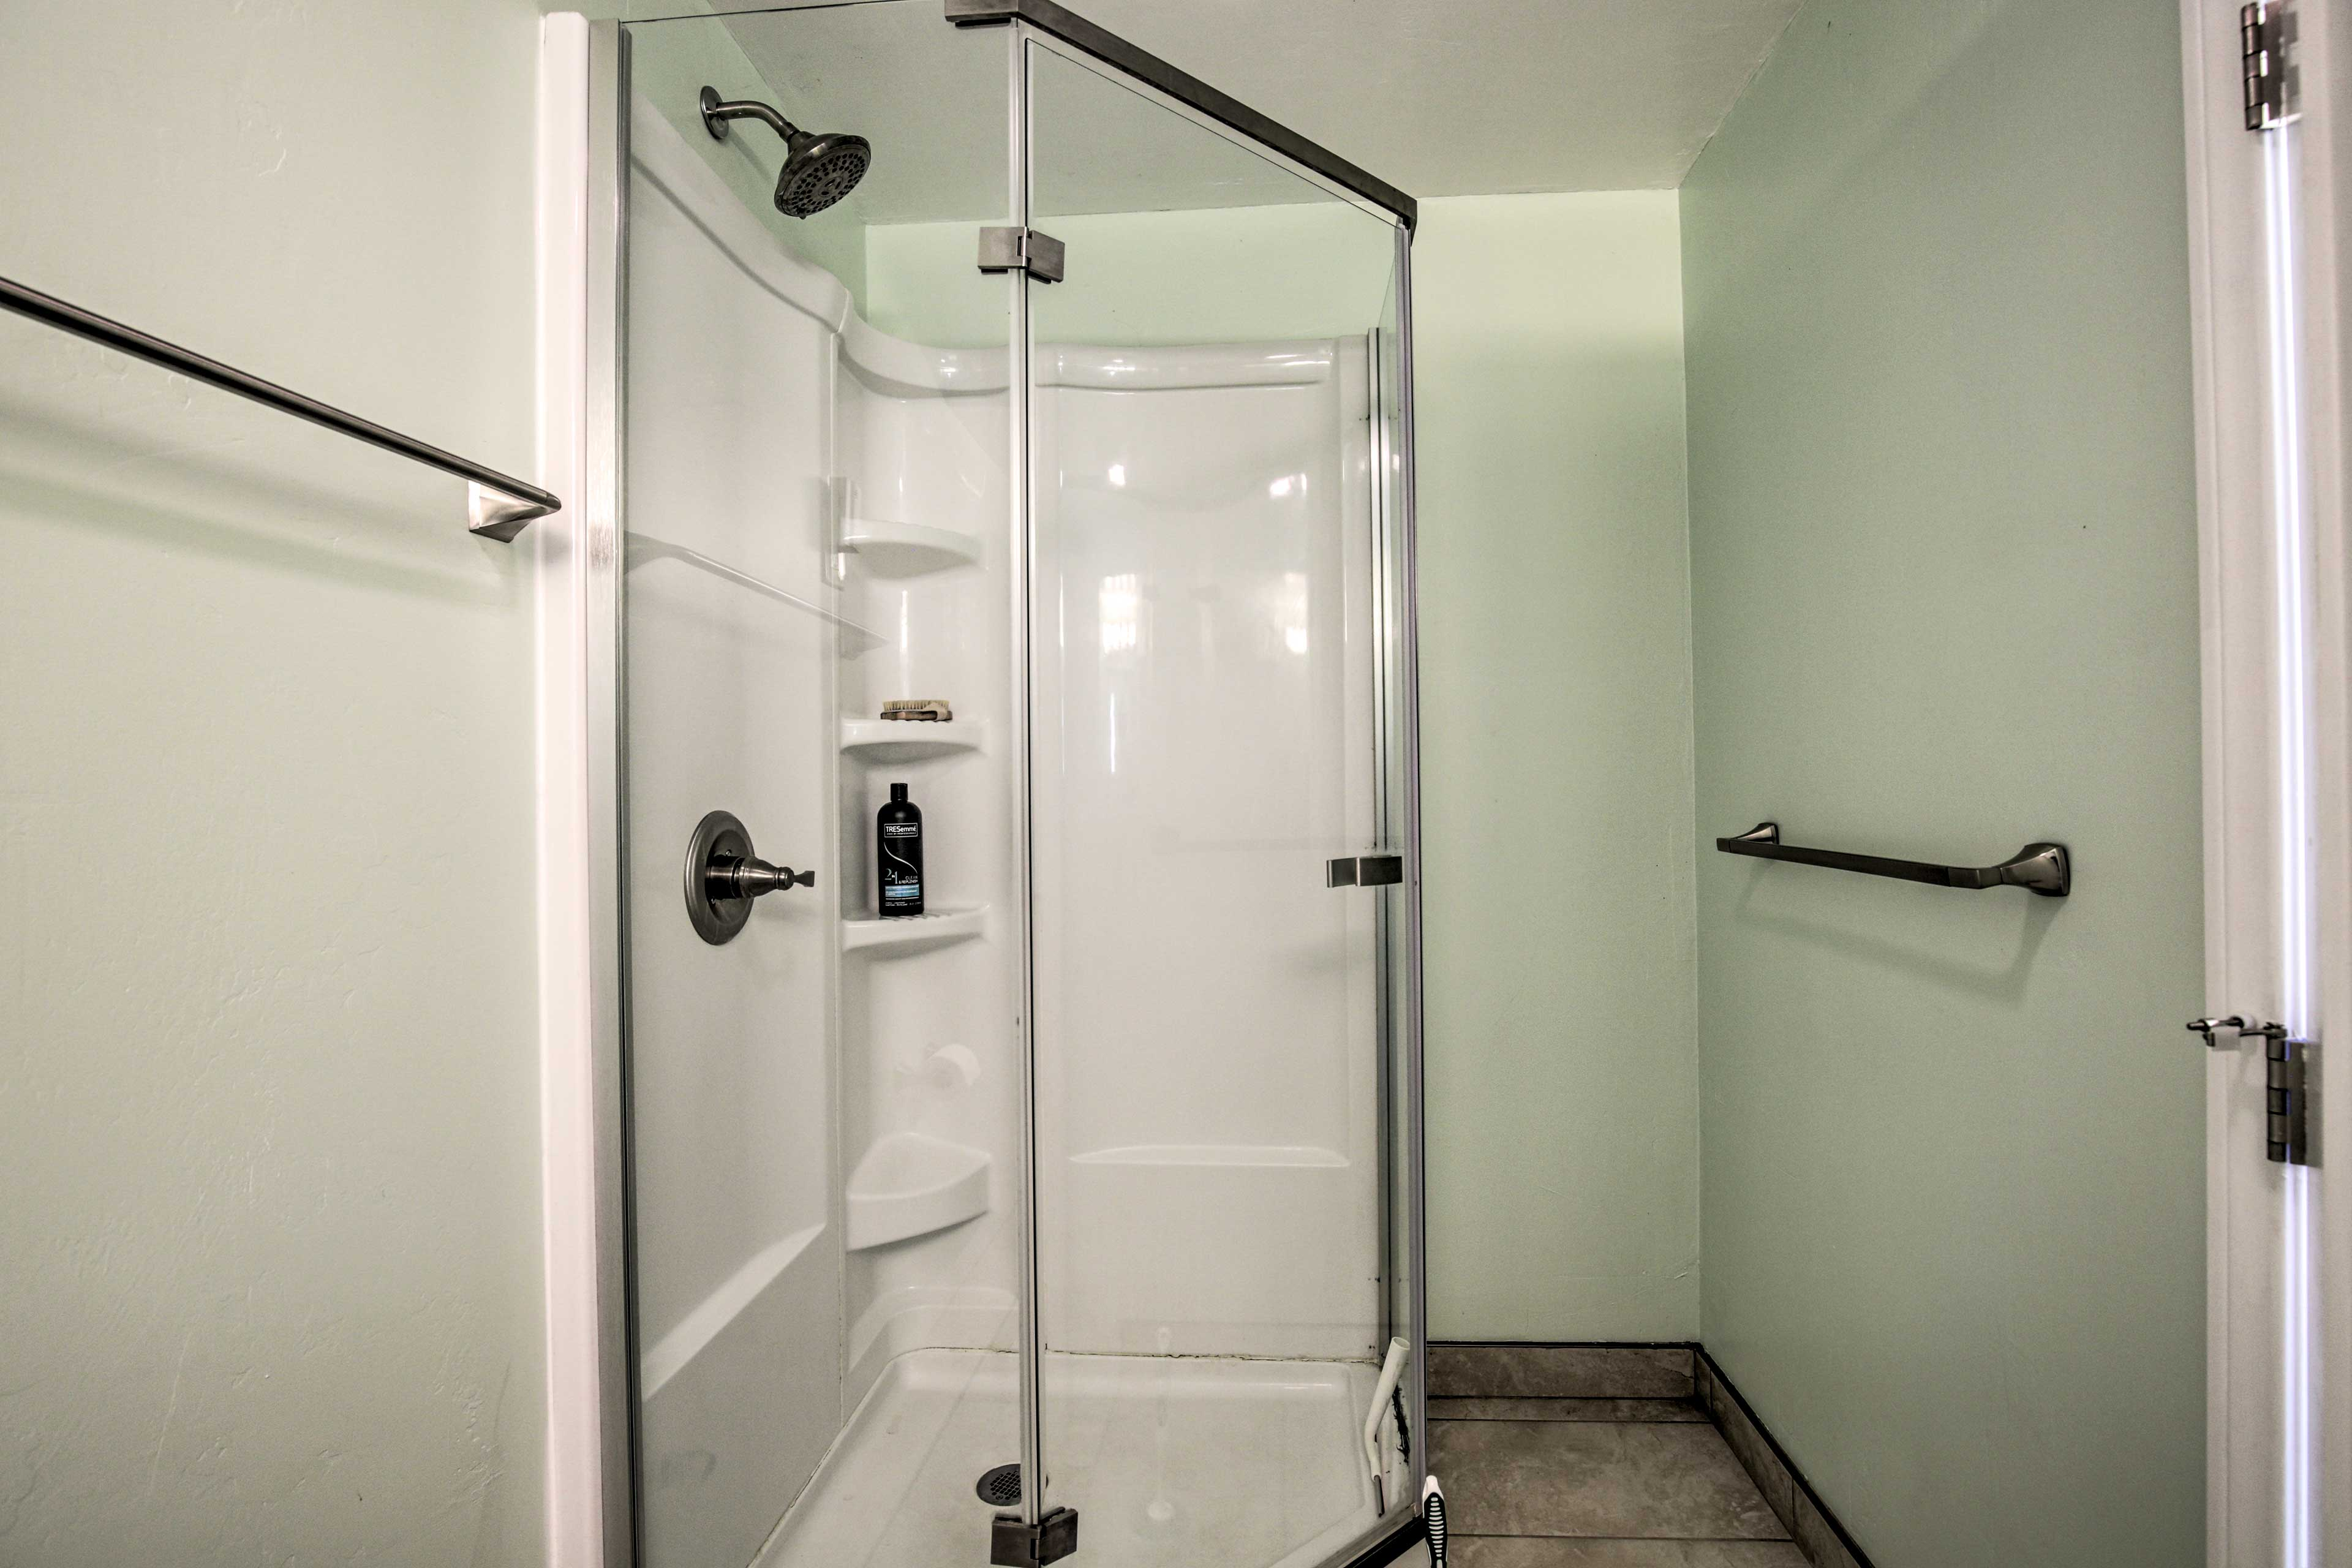 This bathroom was recently updated with a walk-in shower!